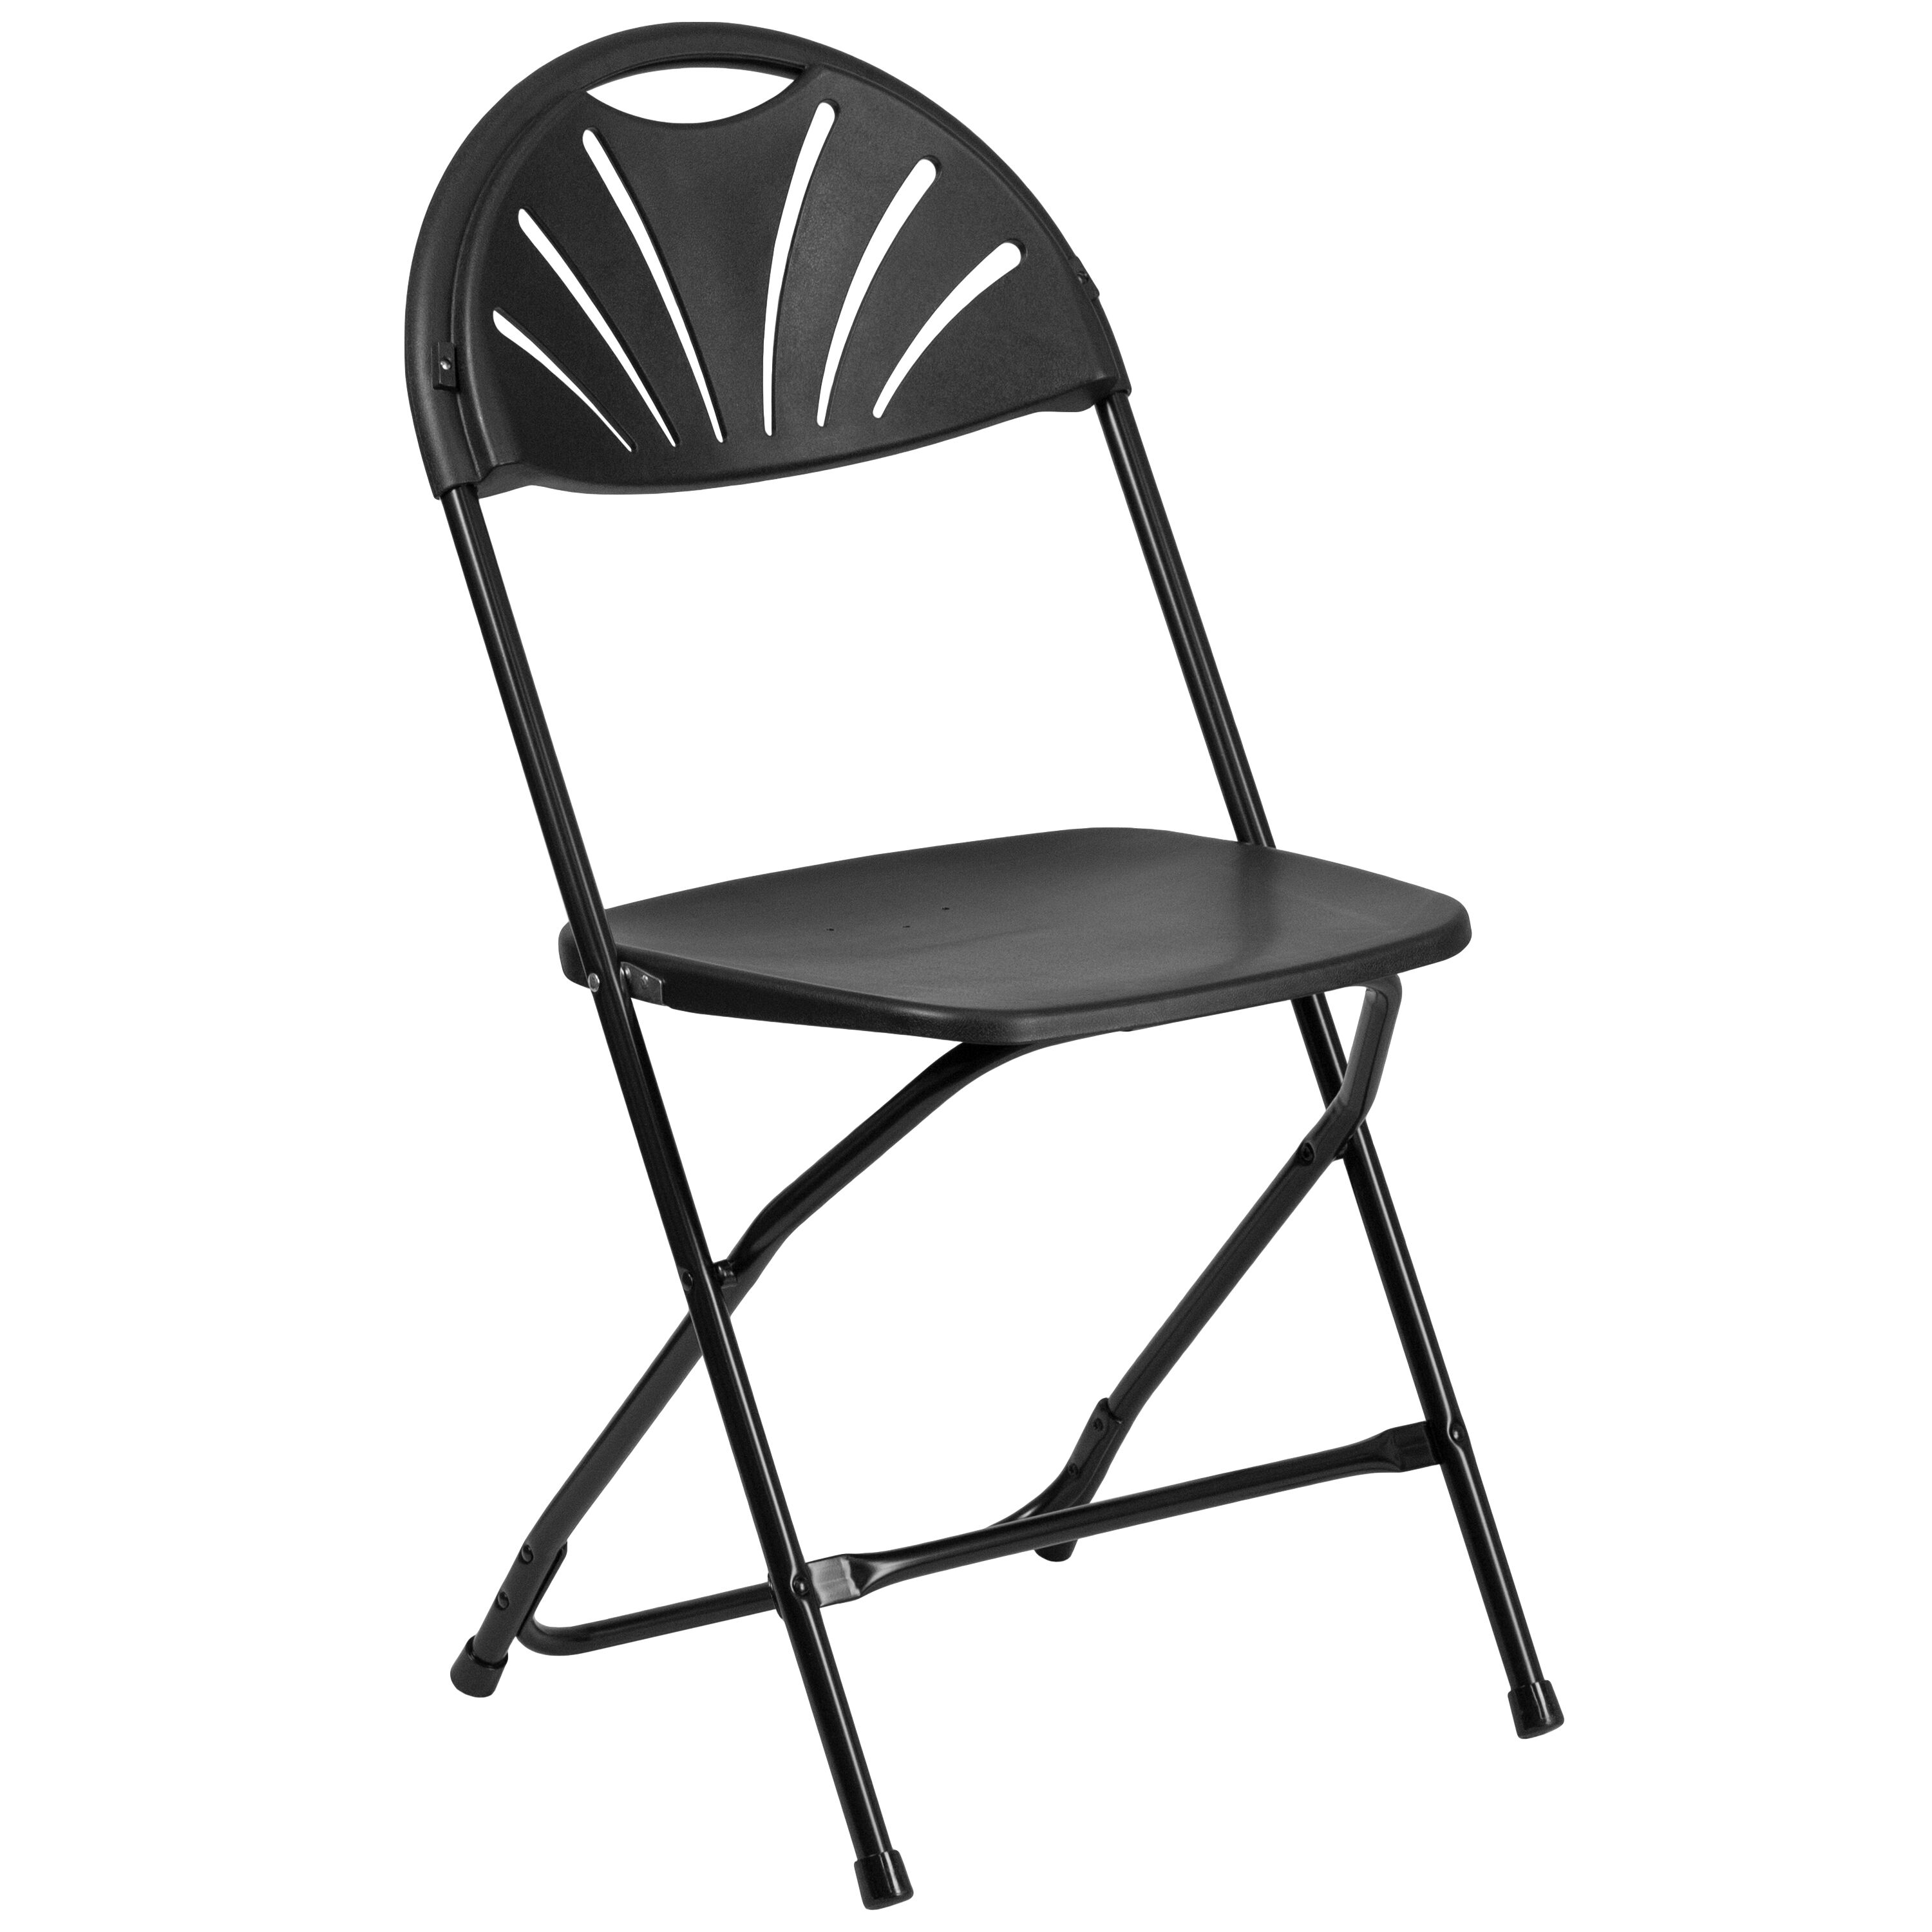 folding chairs outdoor use double reclining chair black plastic le l 4 bk gg foldingchairs4less com